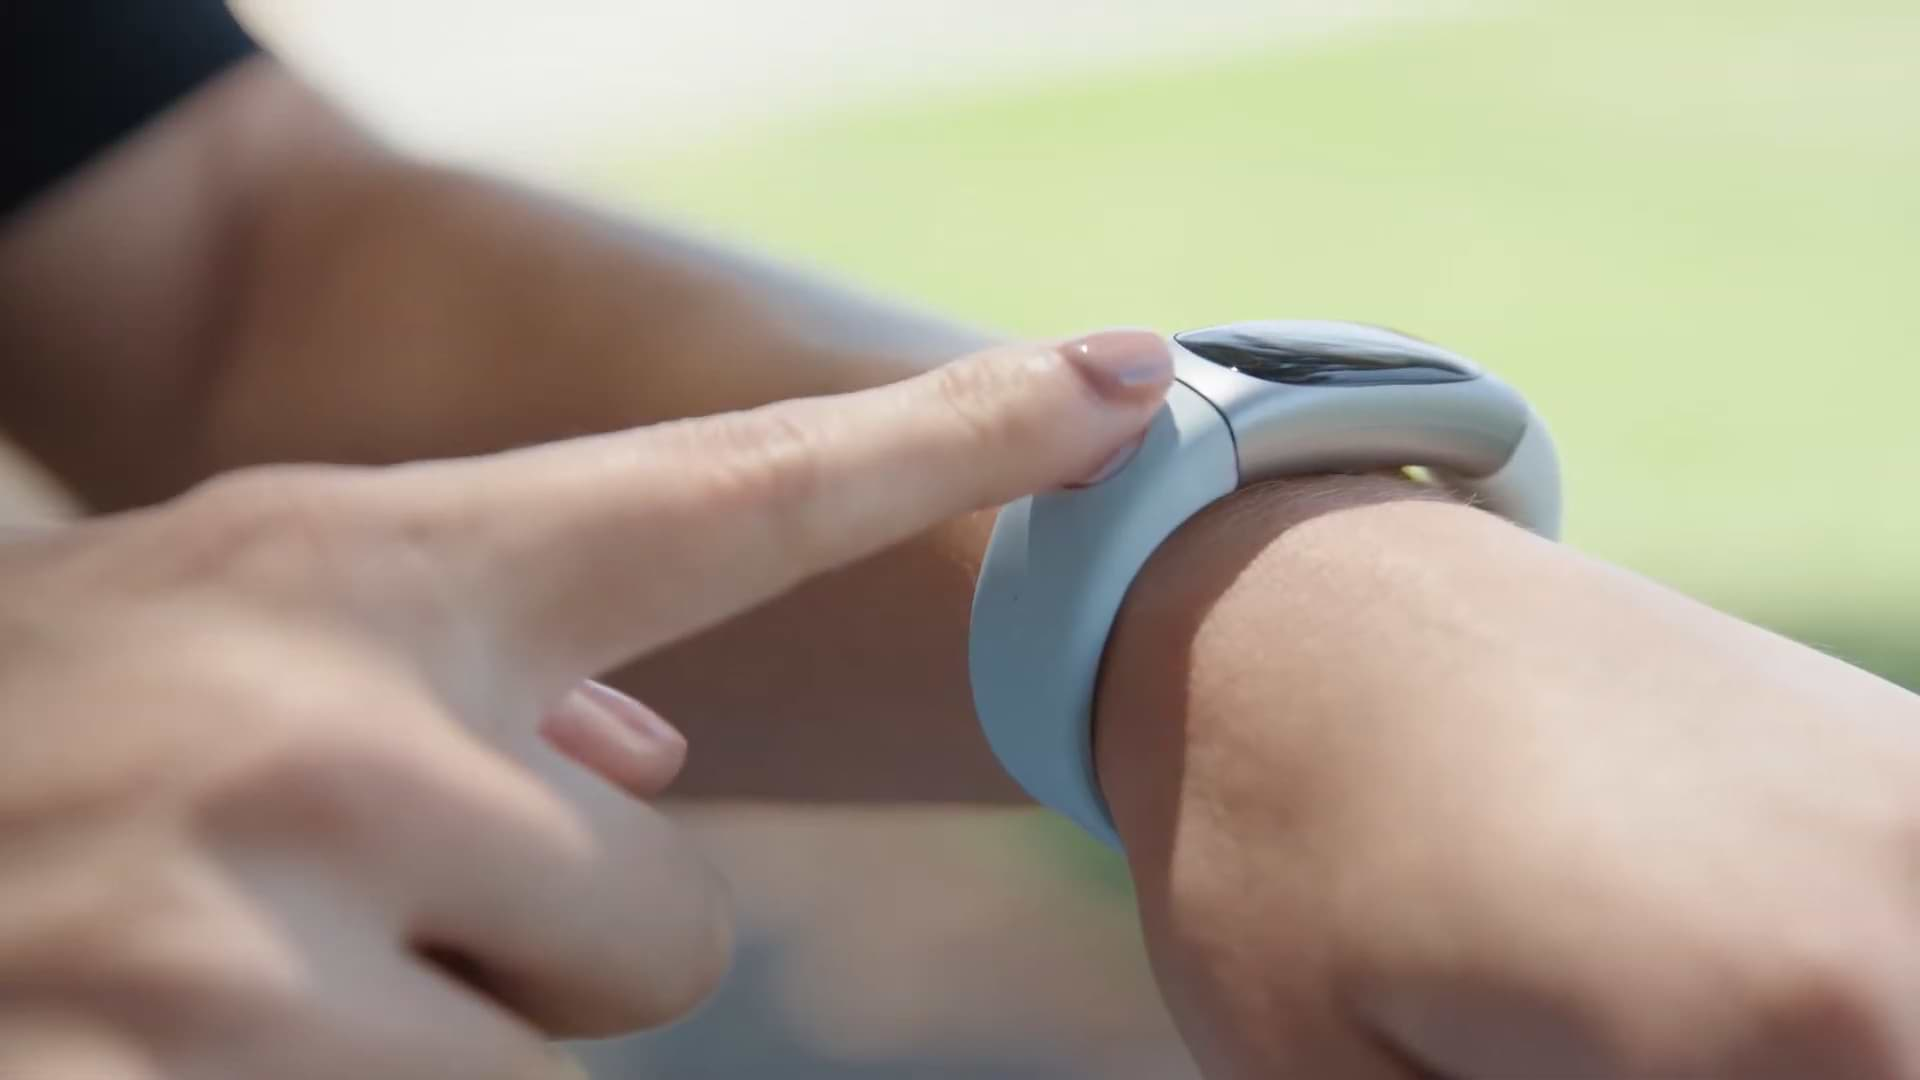 This Activity Bracelet Is Also Capable Of Measuring Your Blood Sugar Levels